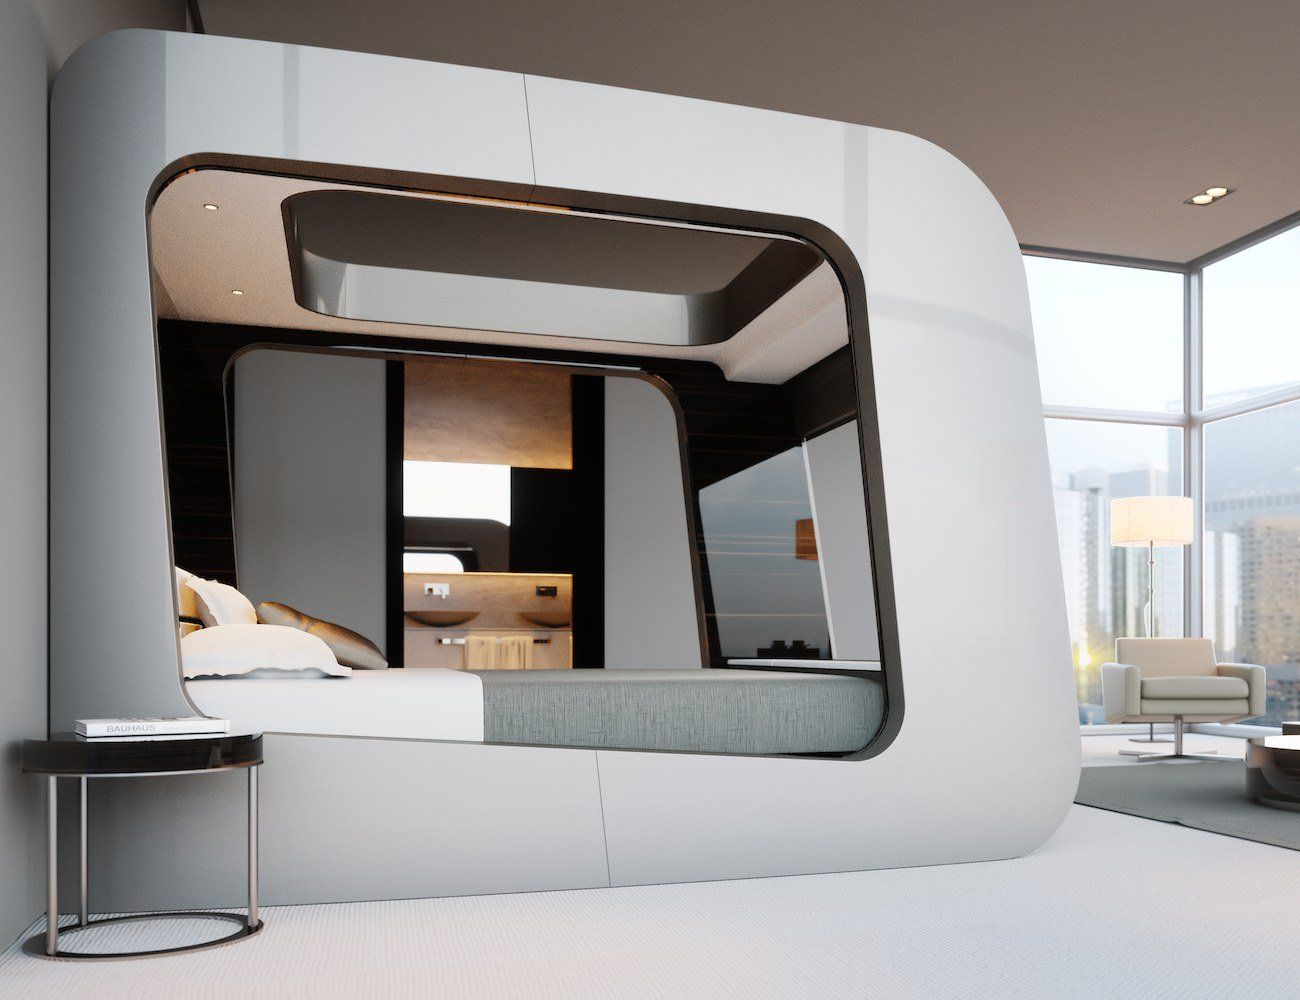 Hican Revolutionary Smart Bed Is Made For The Future Smart Bed